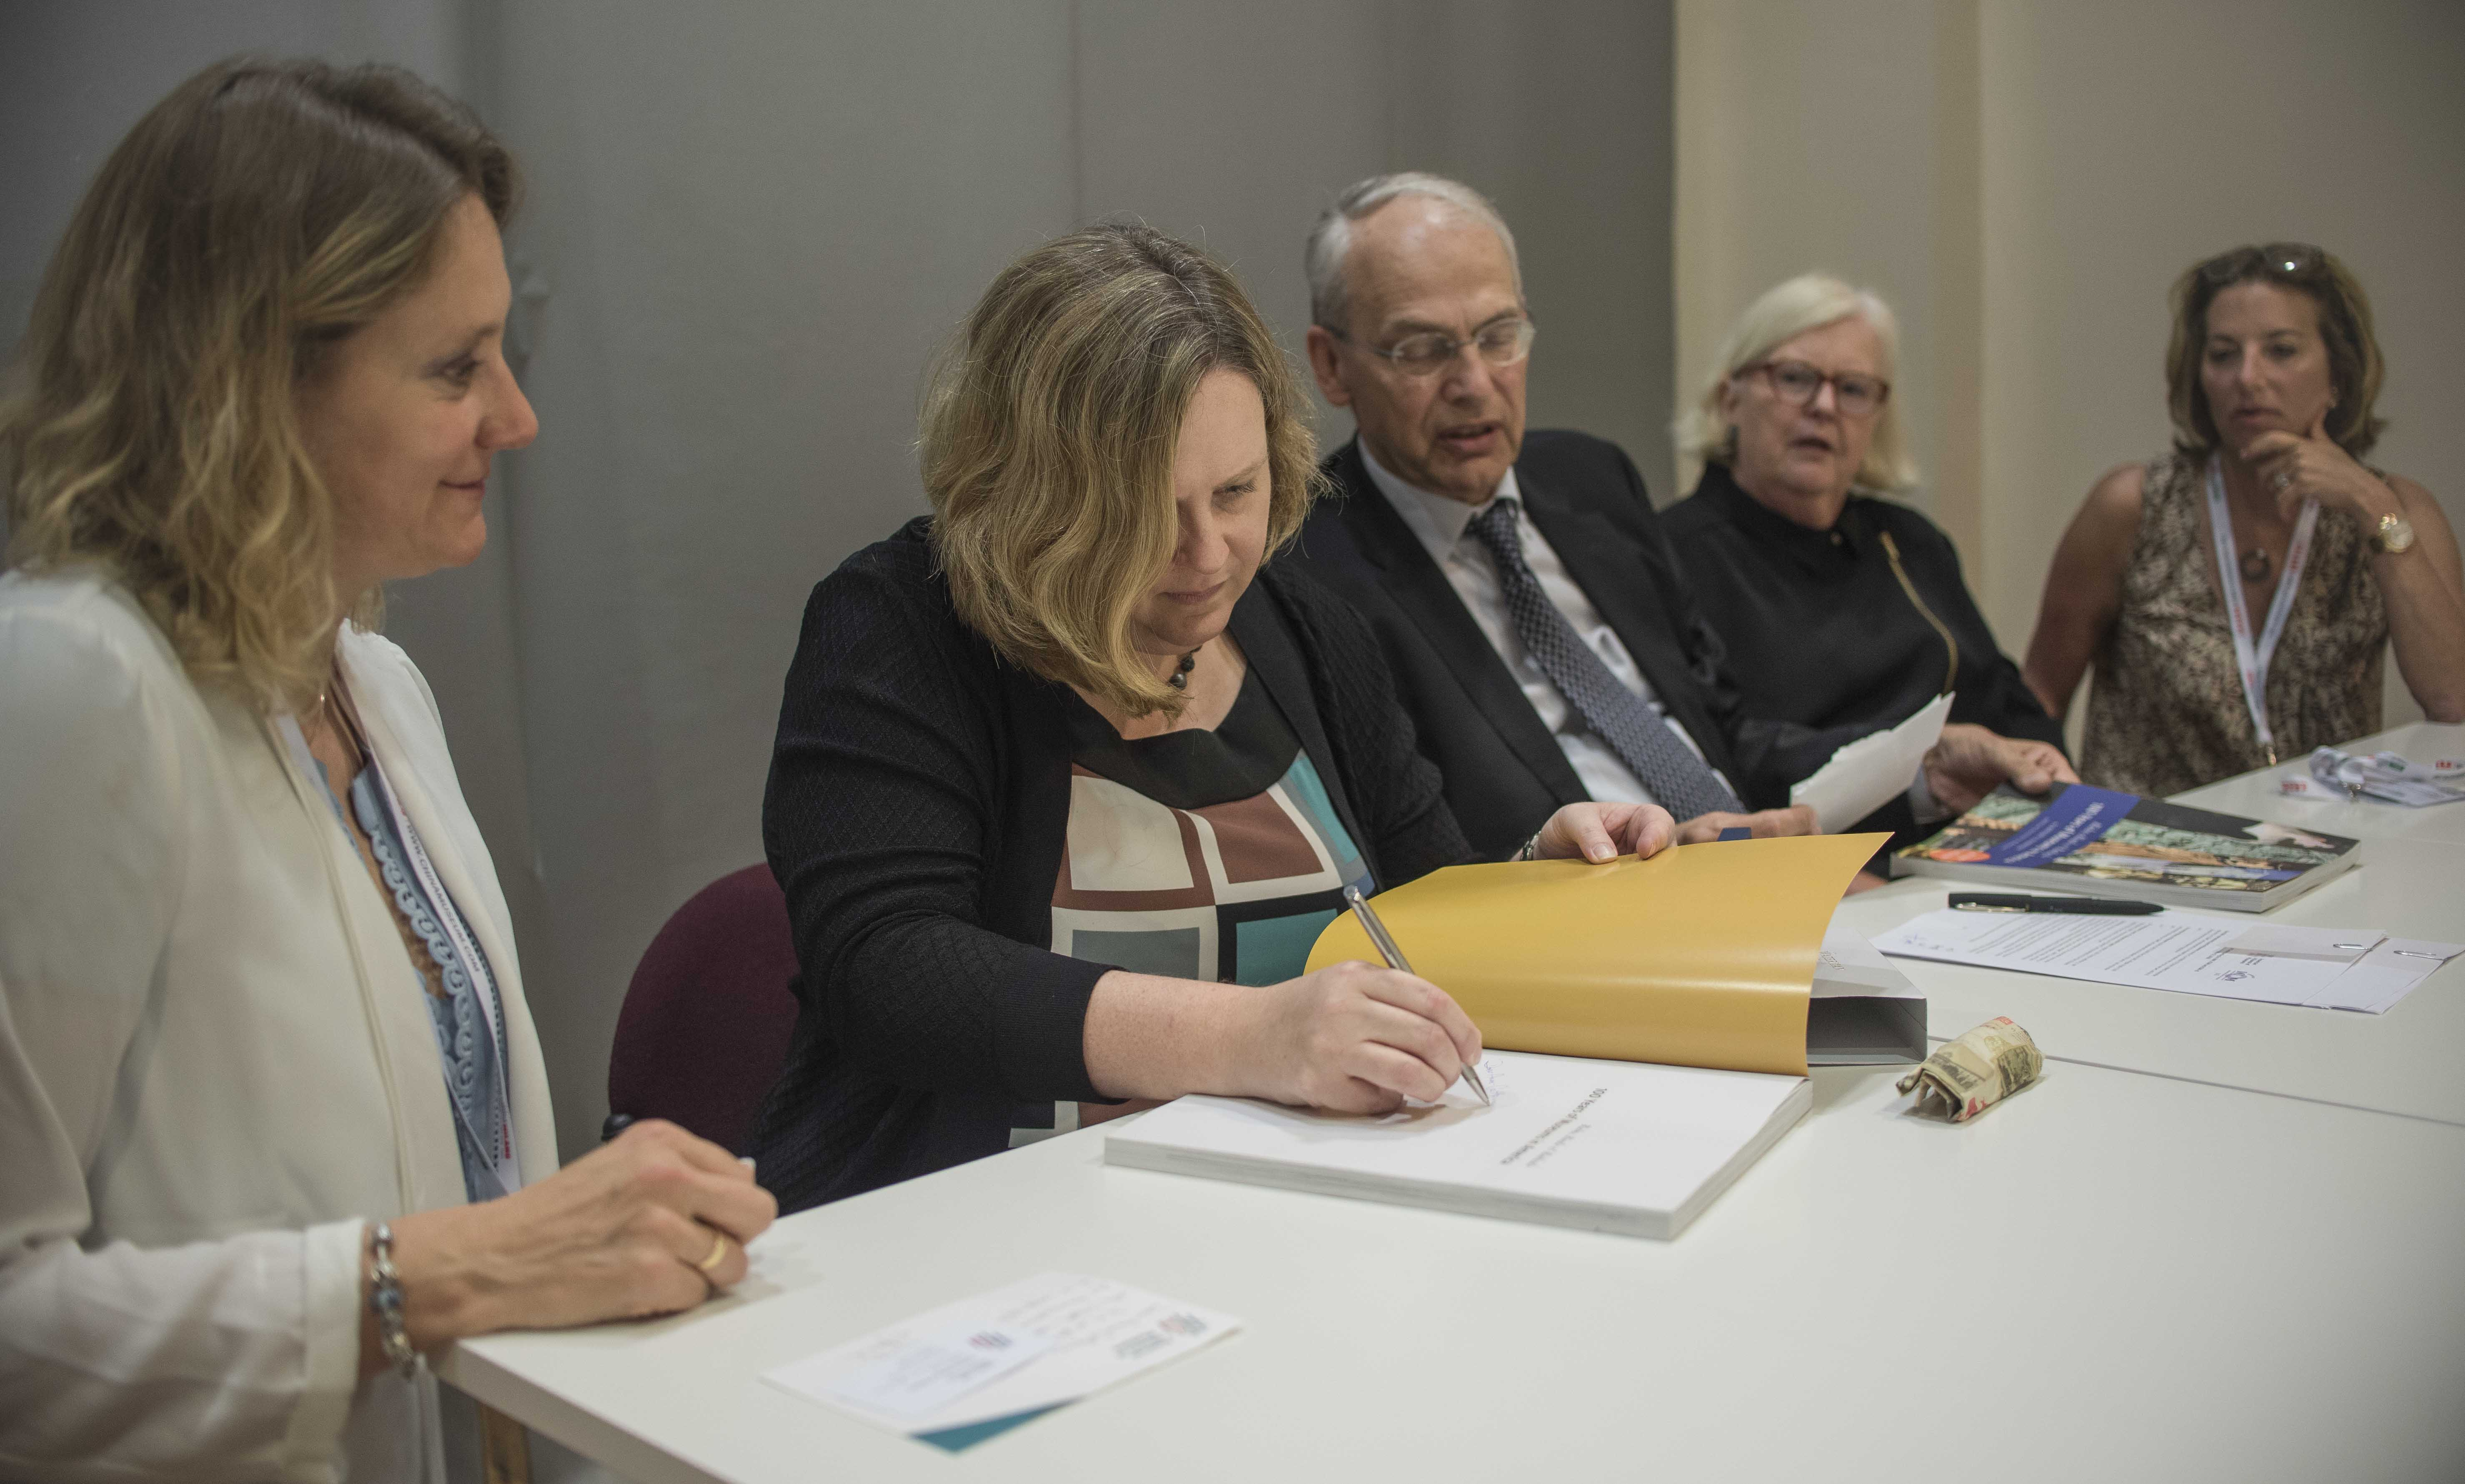 A group of people sit at a long table. Laura Lott is signing the document.